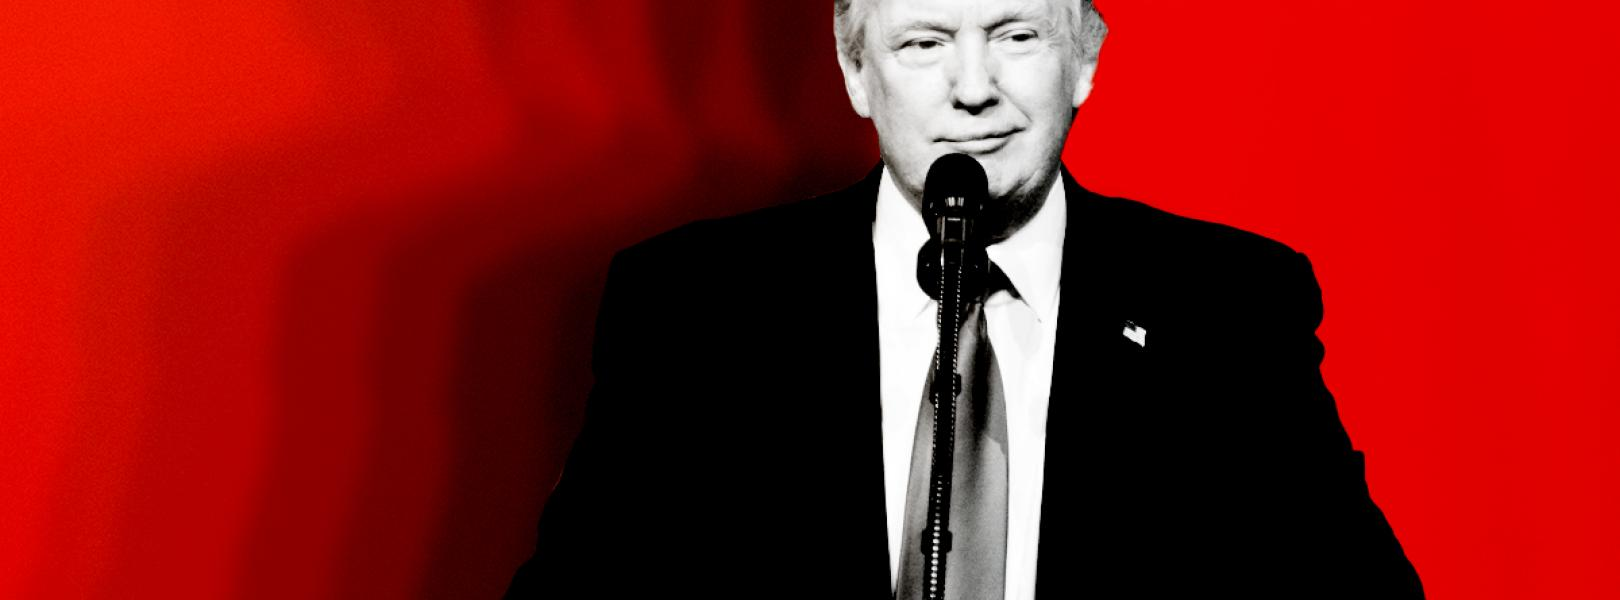 Donald Trump with a red background